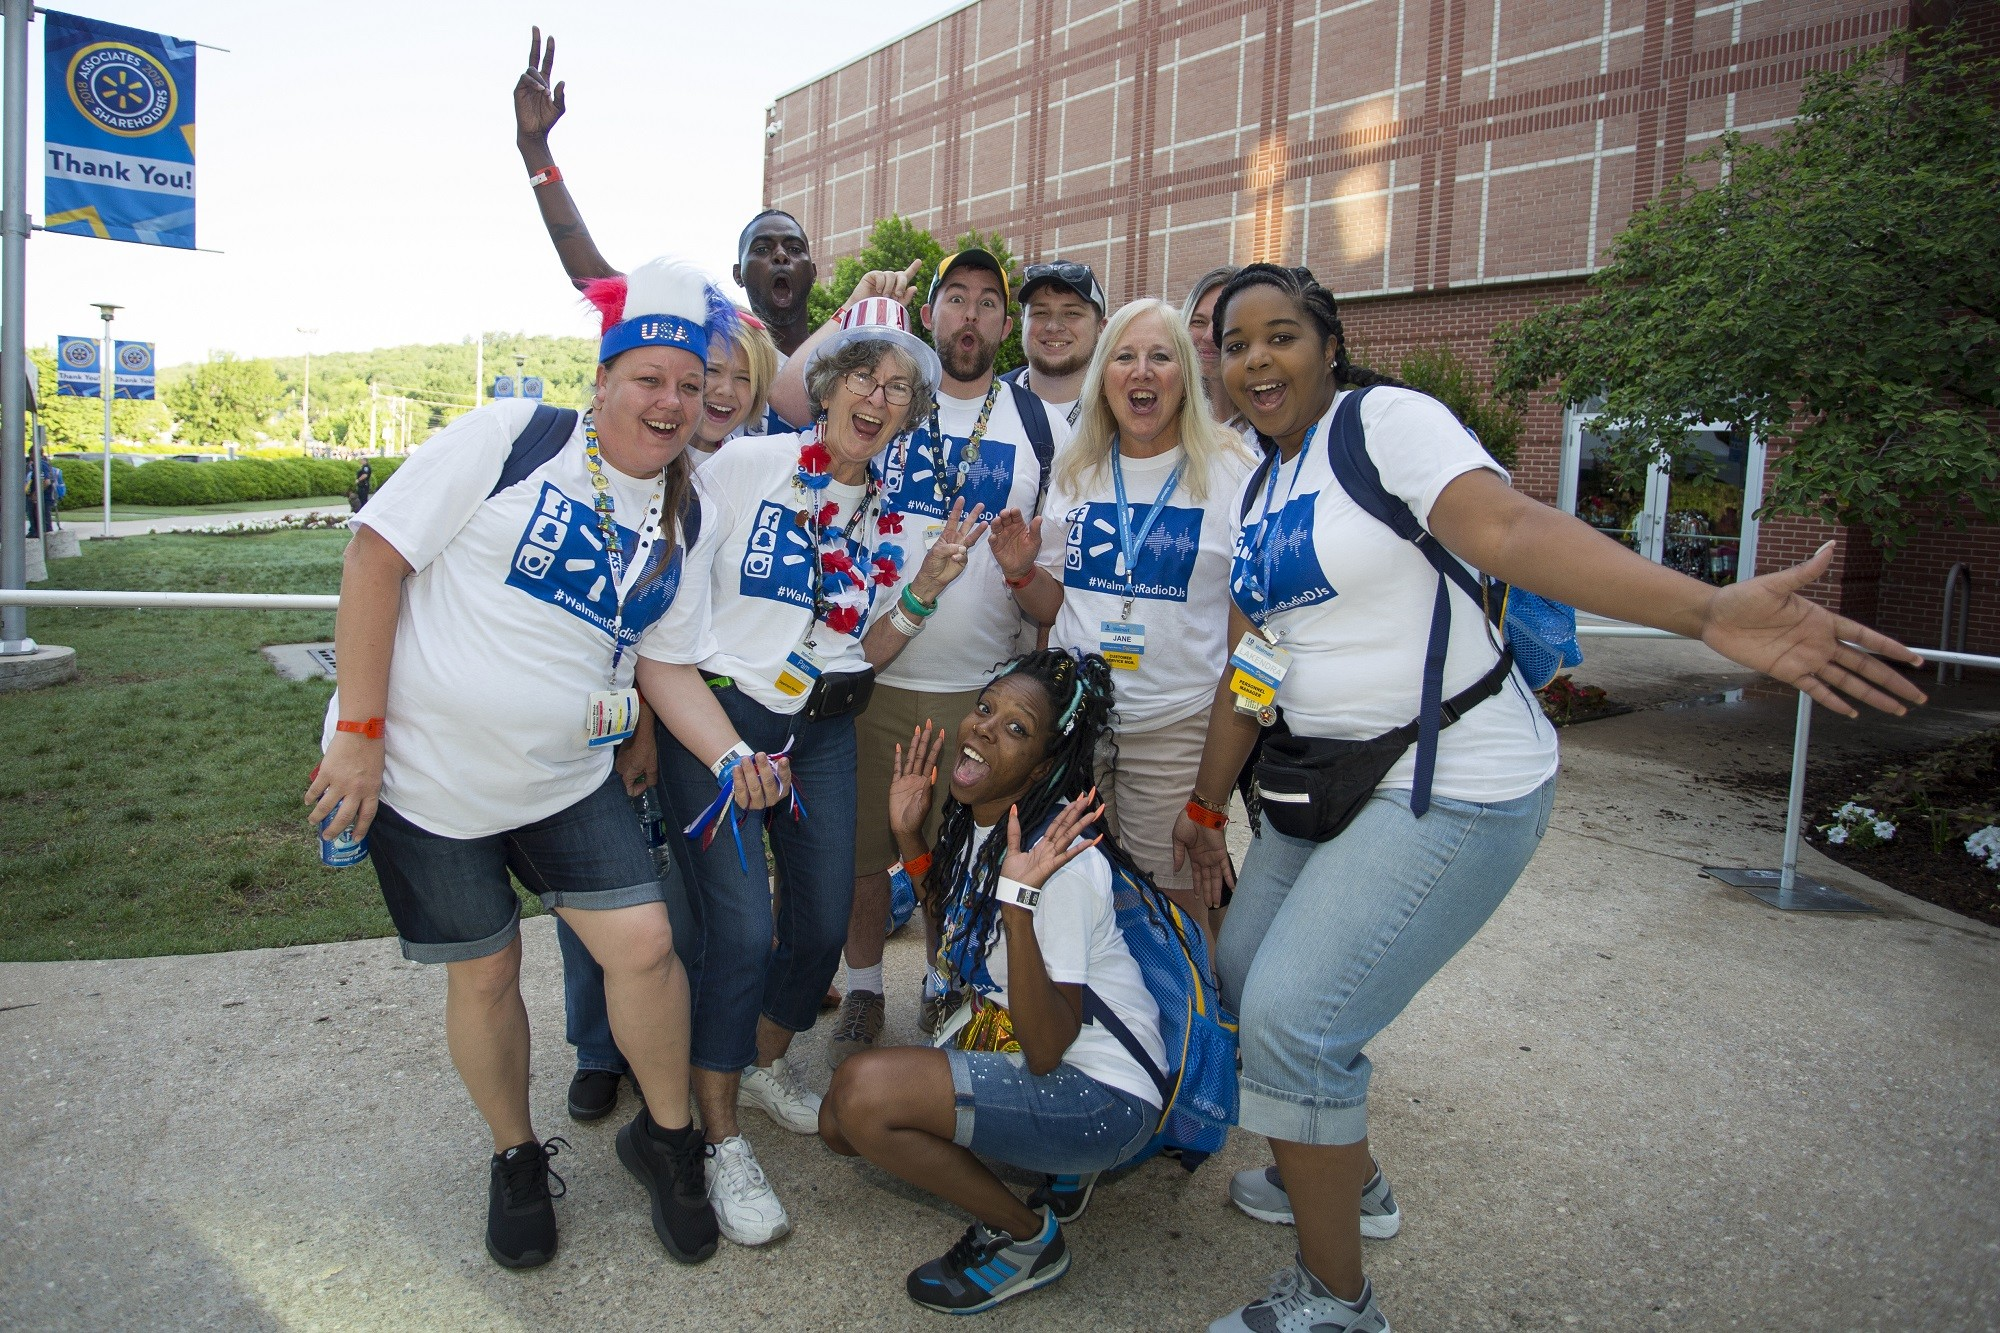 Associates wait to enter the Bud Walton Arena for the U.S. Associates Meeting during Shareholders 2018